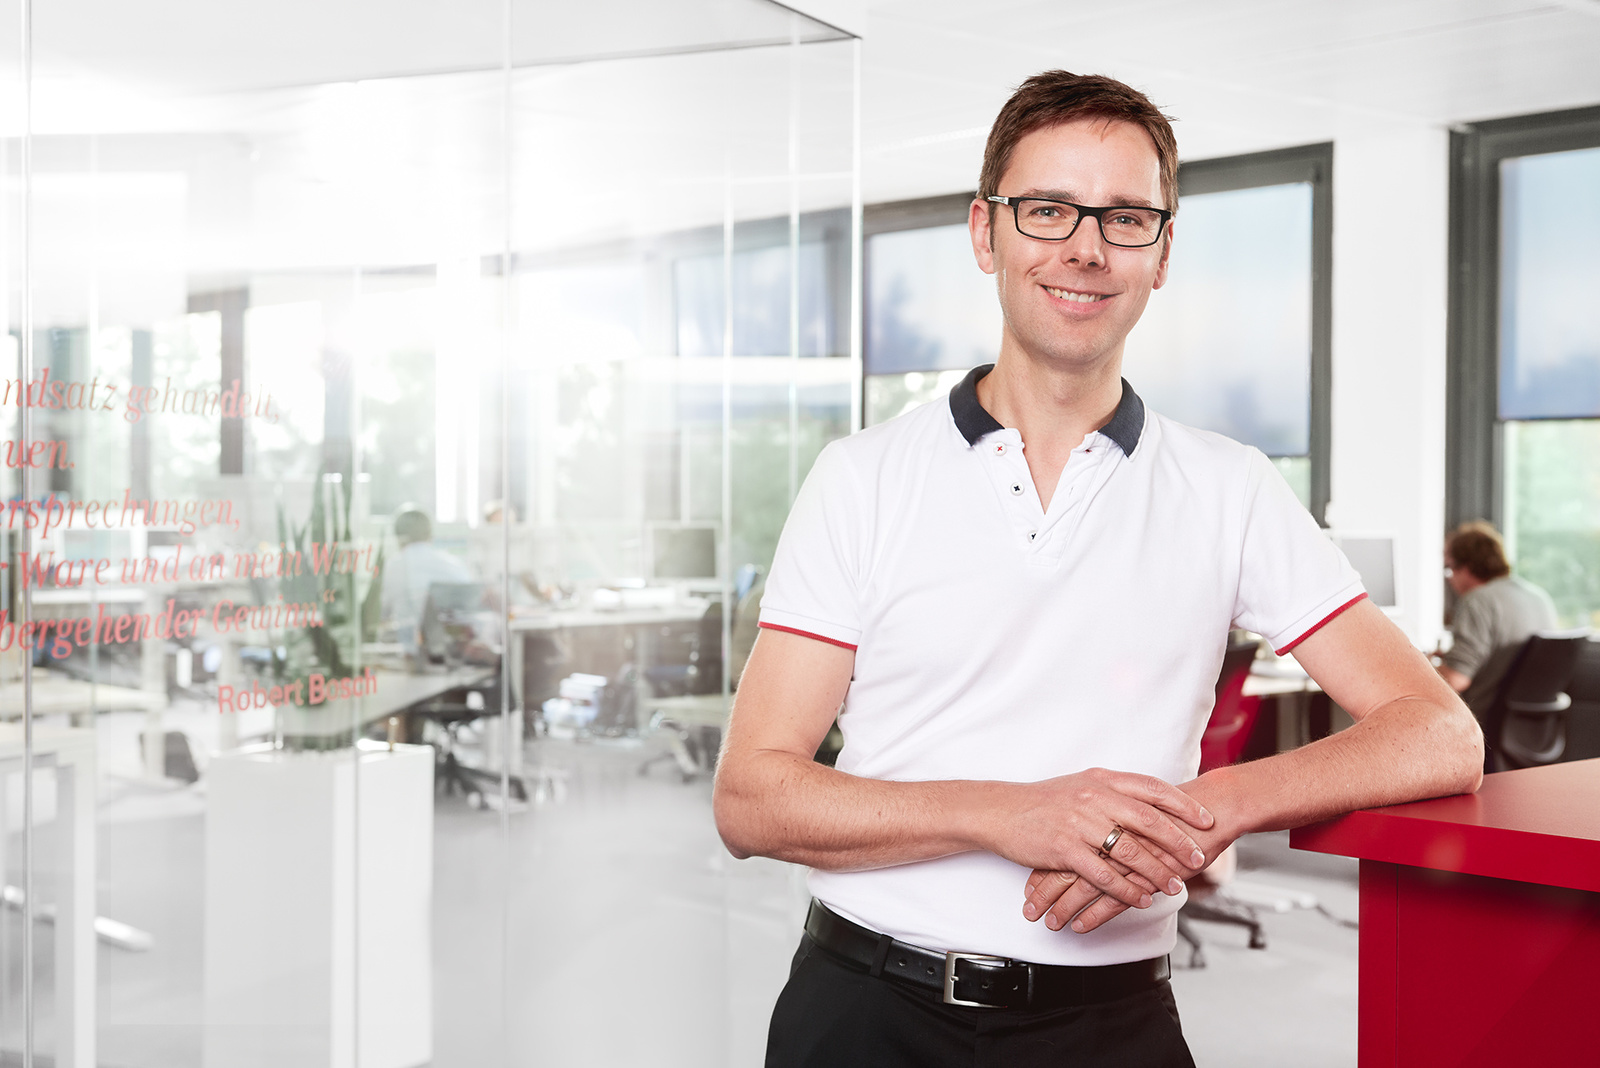 Roland Hüppmeier, responsible for connected life products at Bosch Healthcare Solutions GmbH